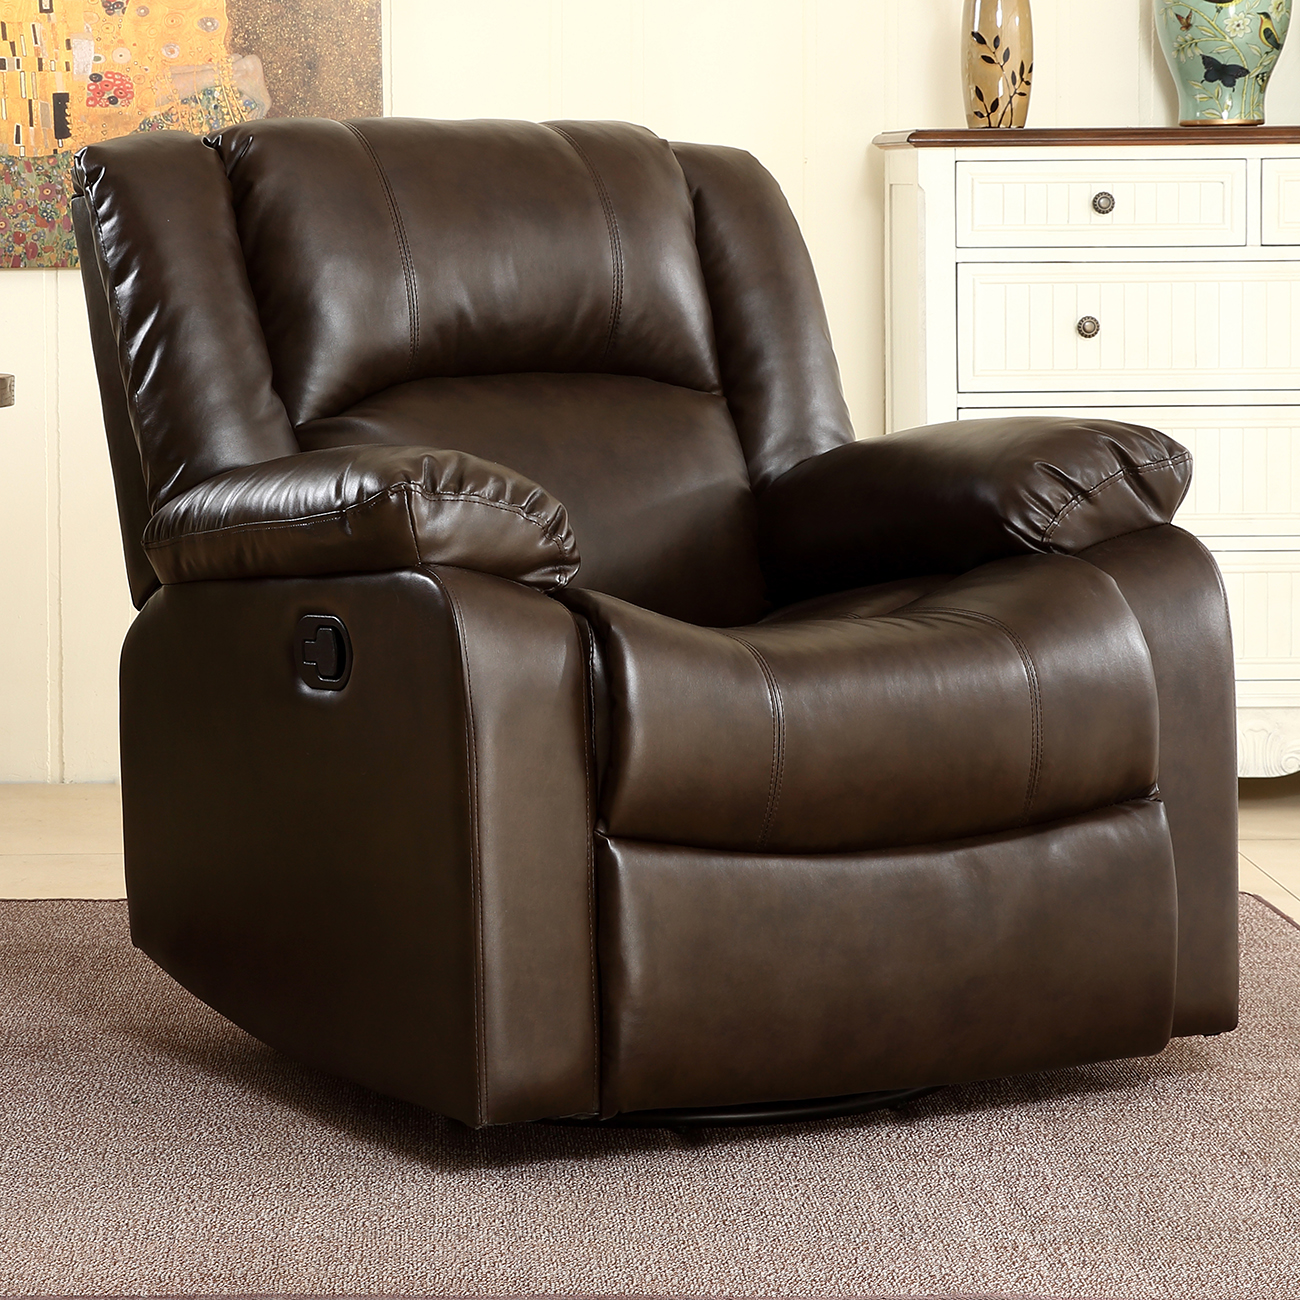 Swivel Recliner Chair New Recliner And Rocking Swivel Chair Leather Seat Living